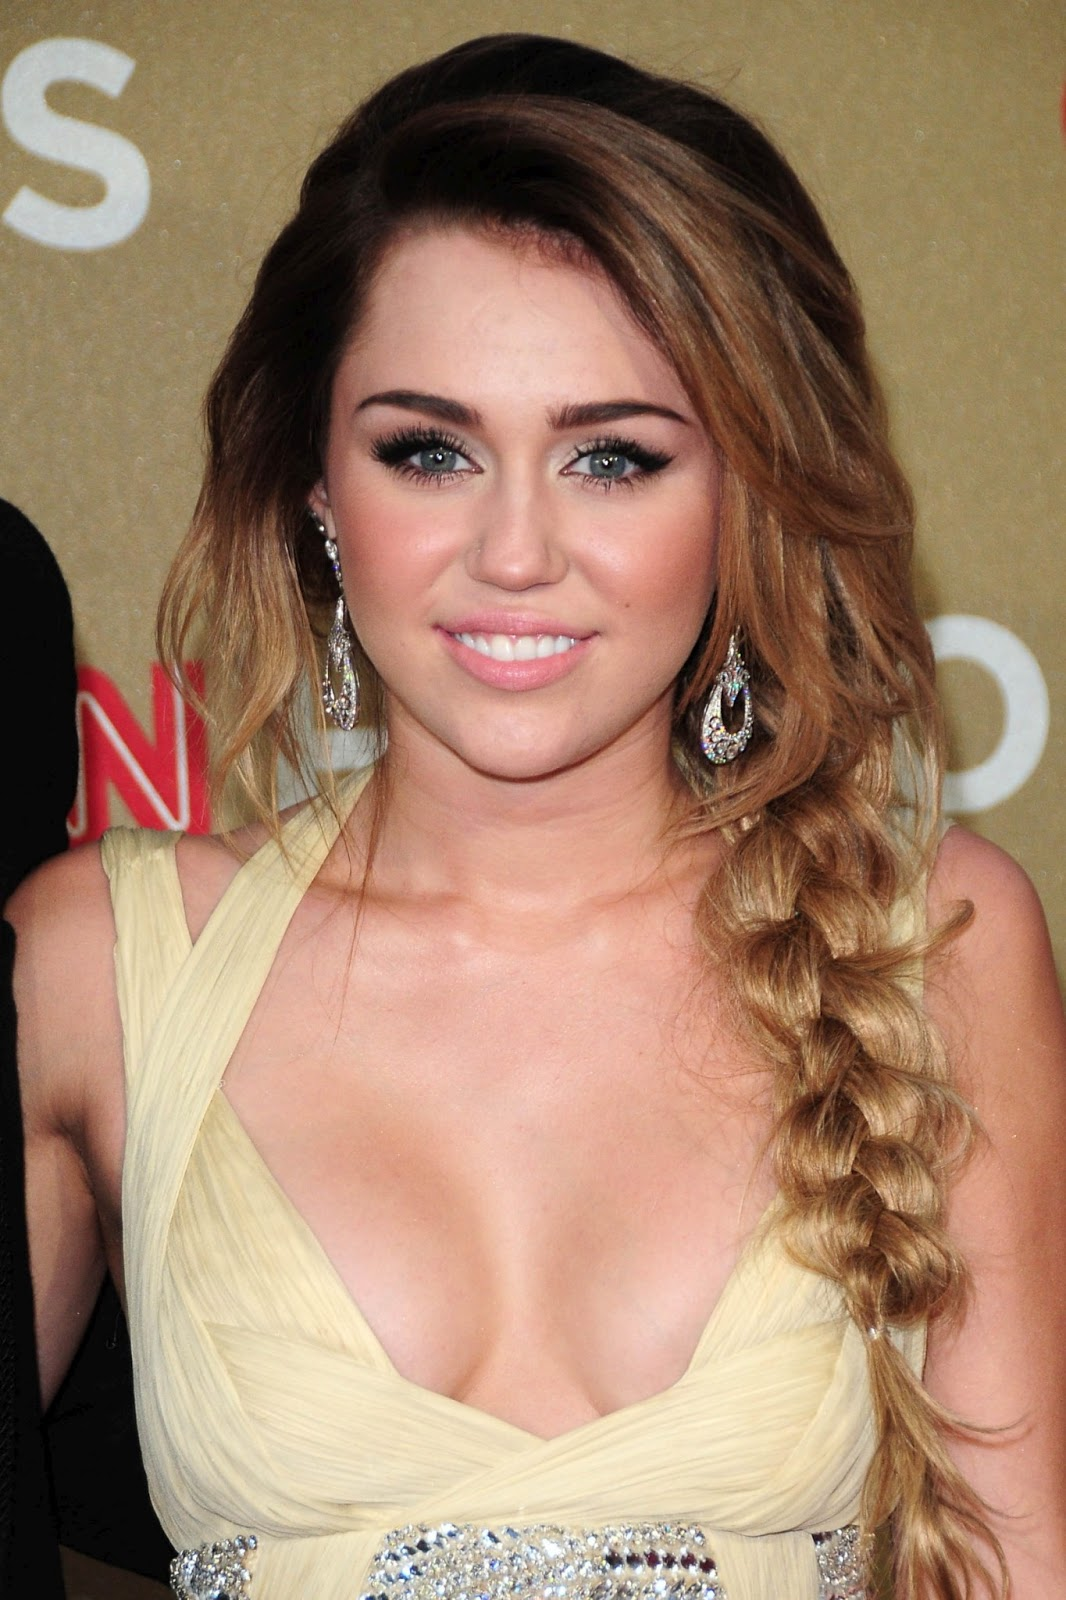 Miley Cyrus: Miley Cyrus Breast Pics